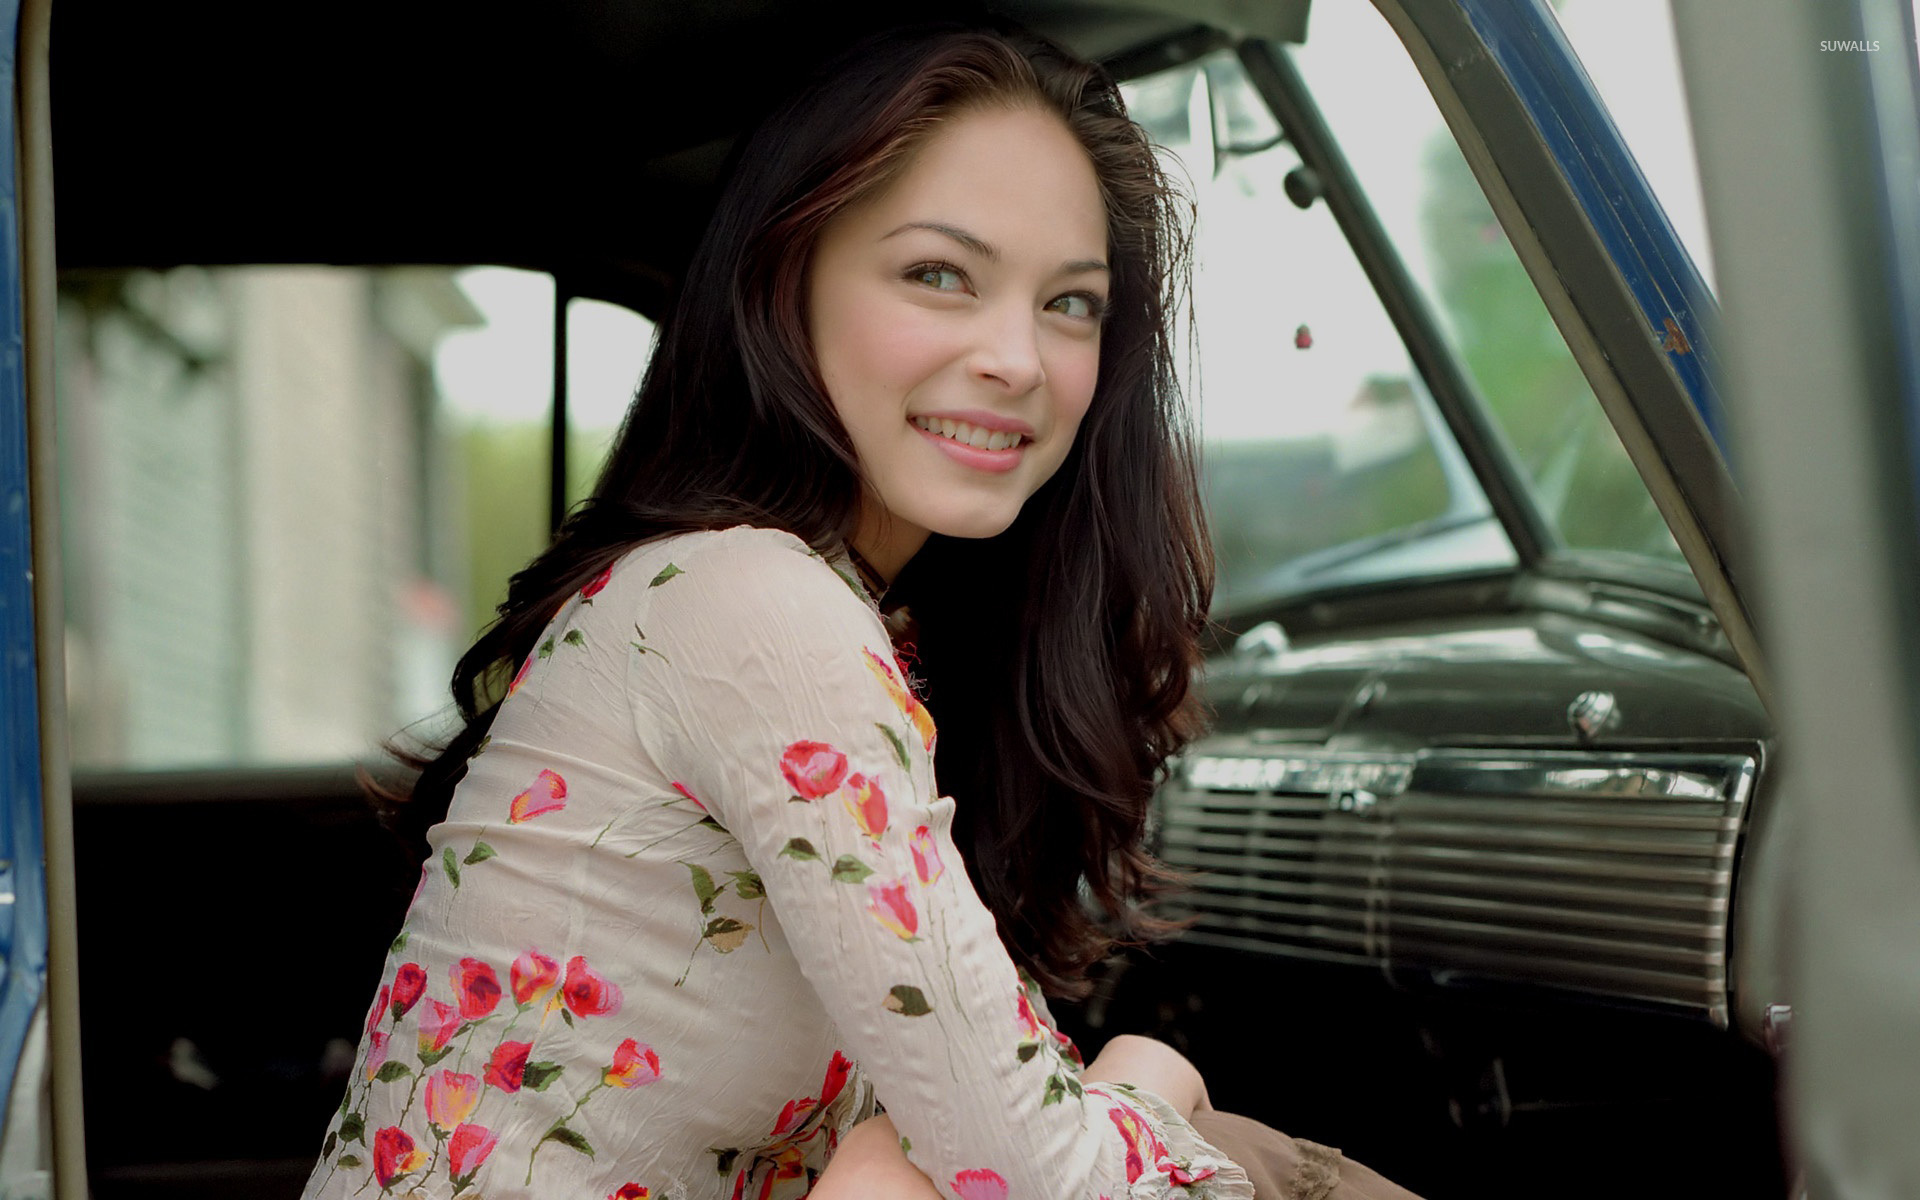 Pursuit Of Happiness Hd Wallpapers With Quotes Kristin Kreuk 17 Wallpaper Celebrity Wallpapers 6496